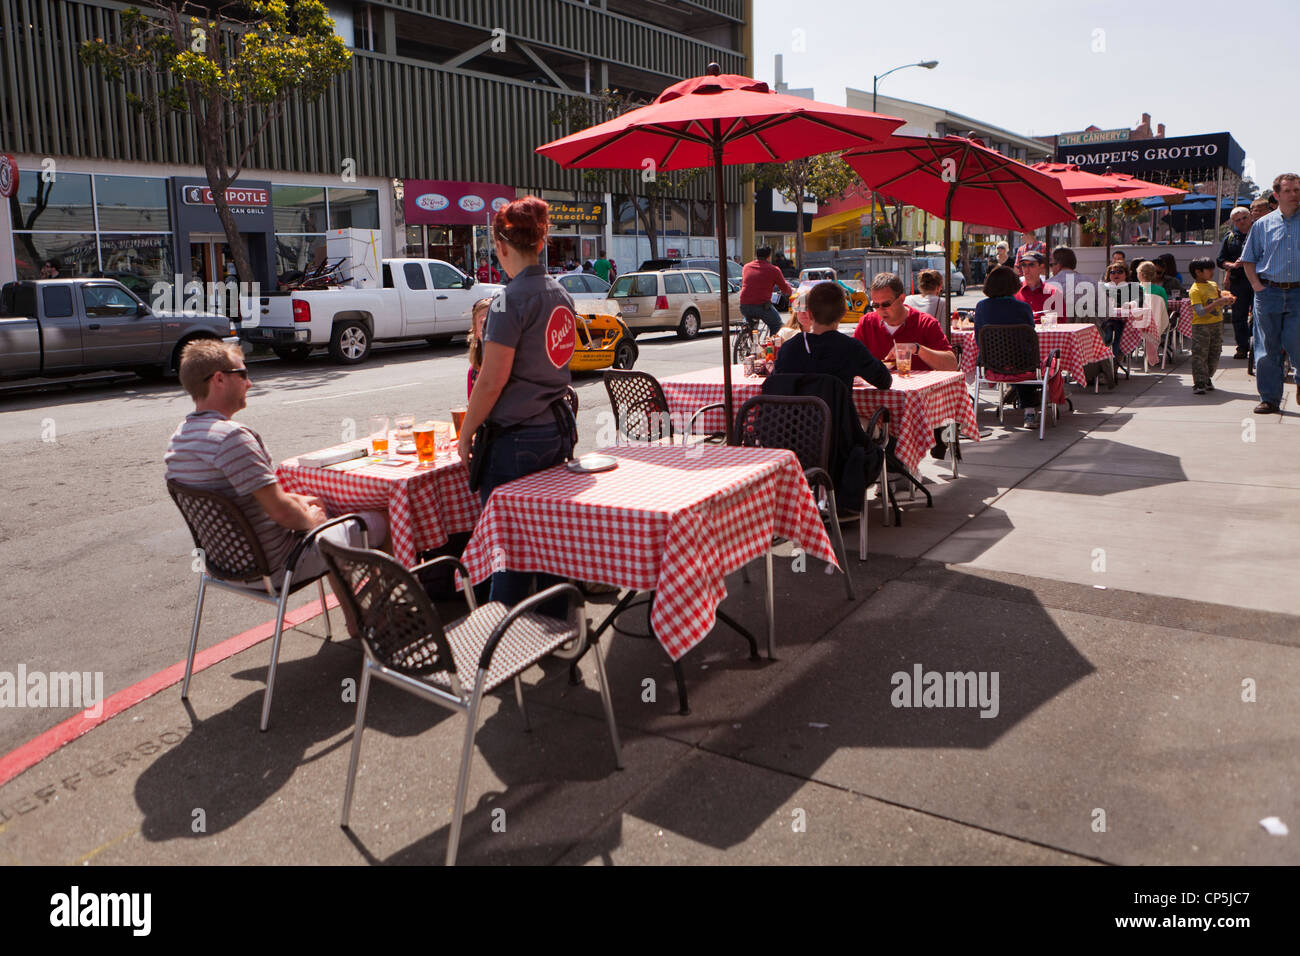 Tables de restaurant sur le trottoir Photo Stock